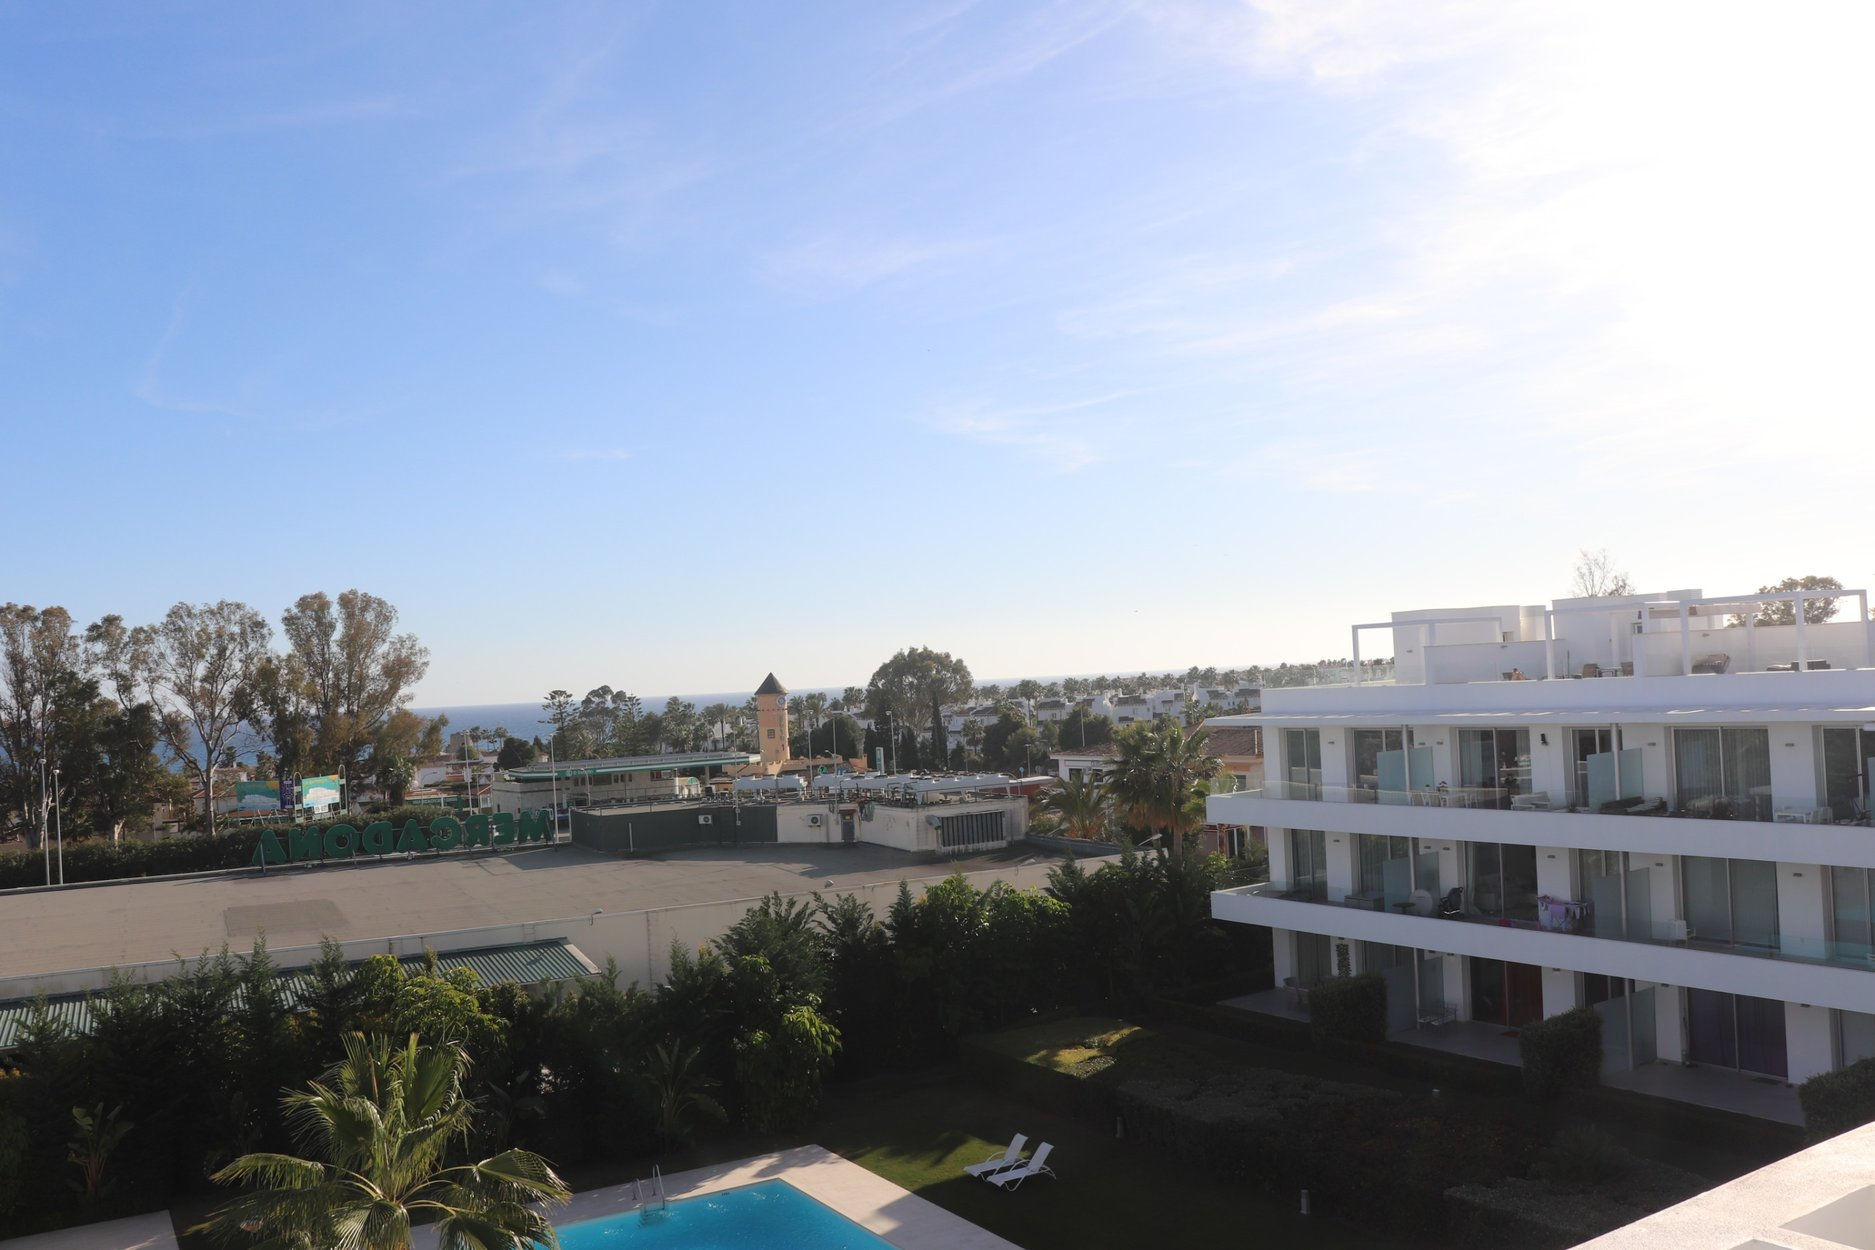 penthouse à vendre à Estepona New Golden Mile Belaire M442653